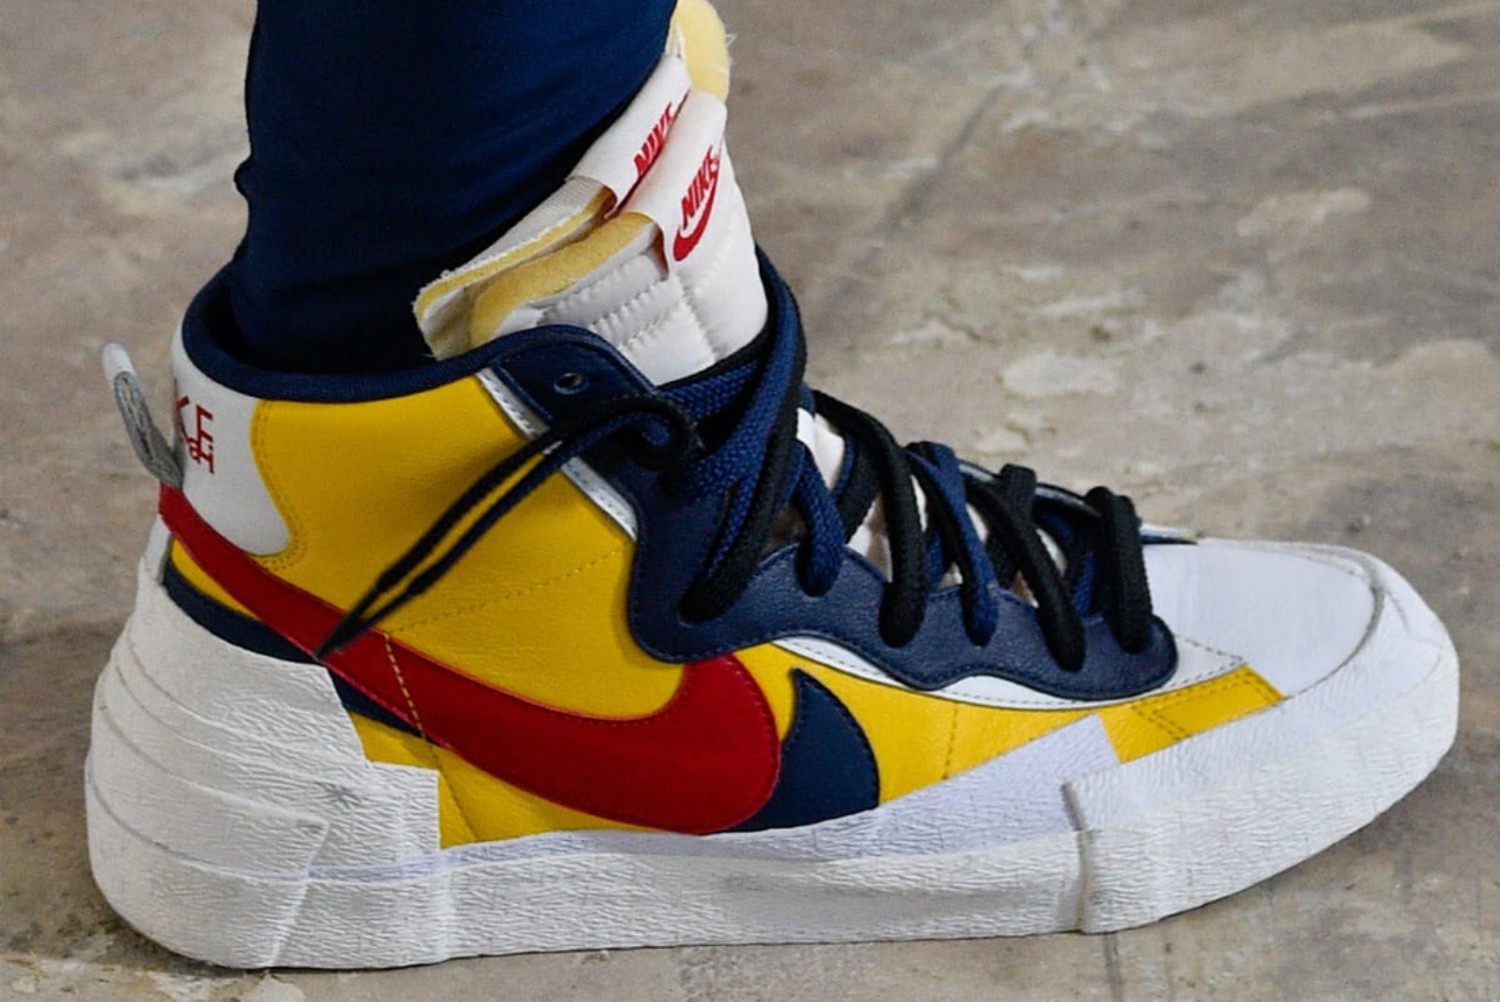 Serre 2 X 5 Sacai Makes Sneaker Magic With Nike Collaboration For